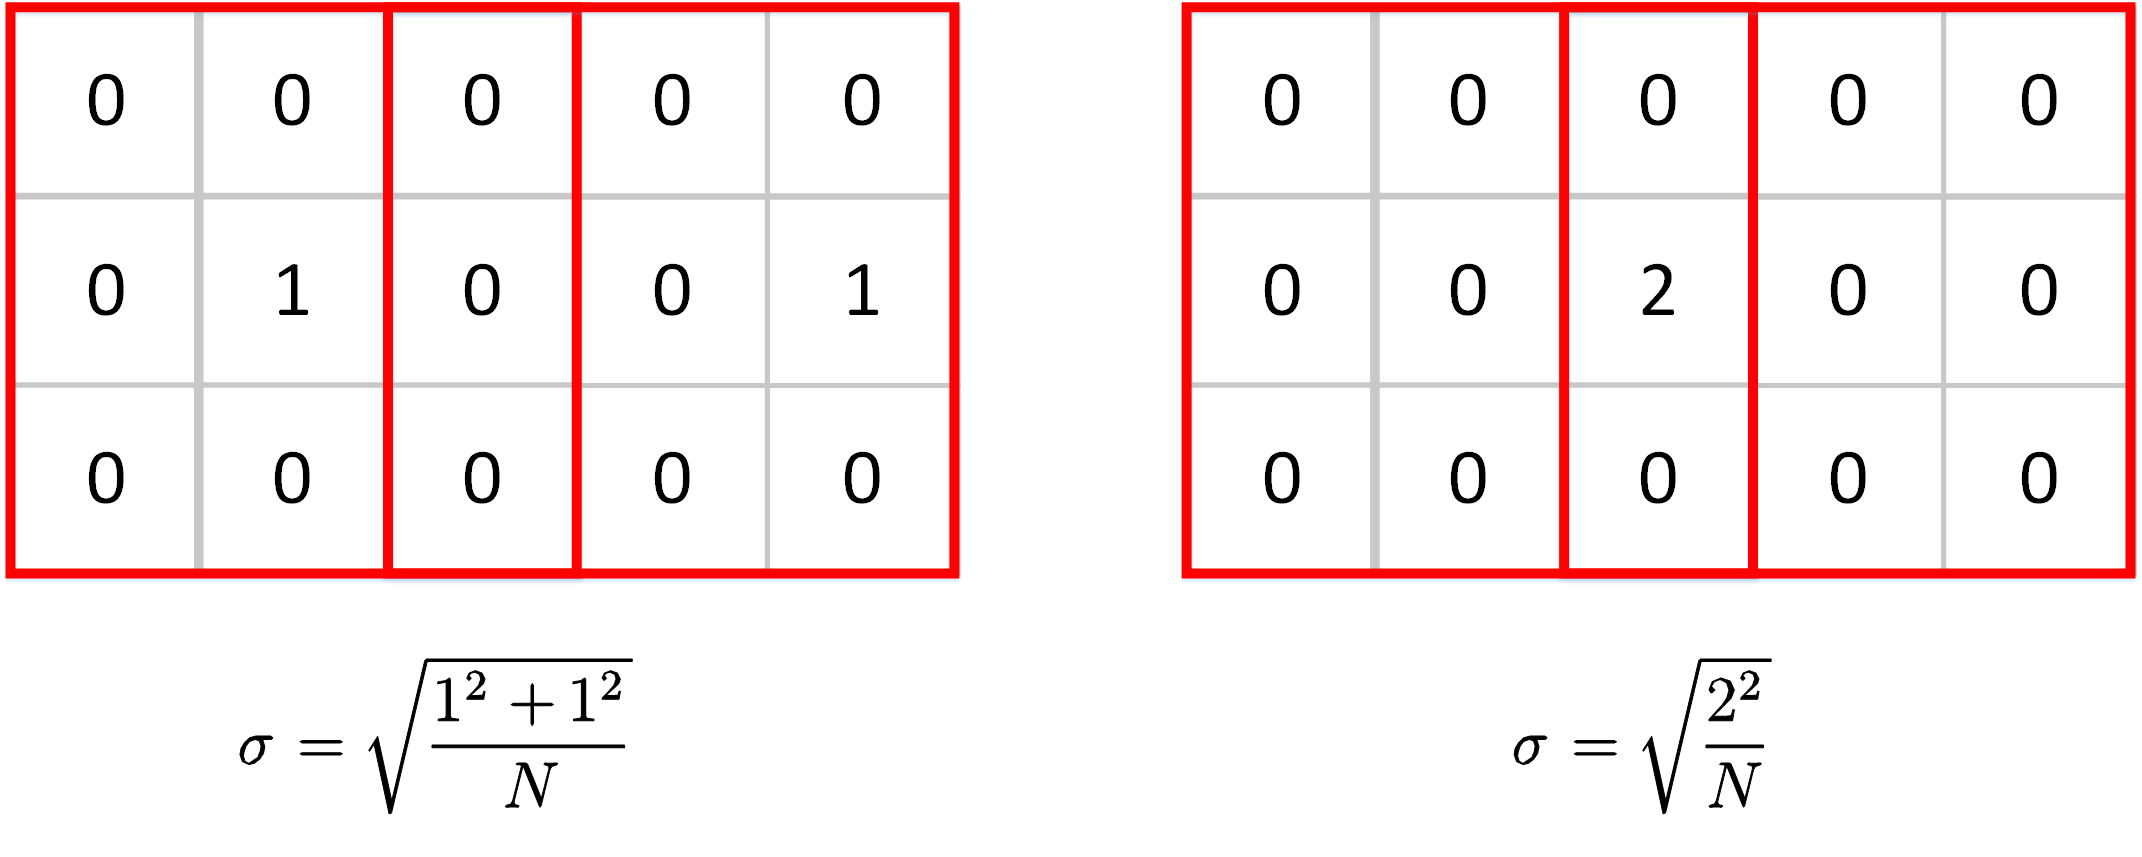 Figure 4. Two different cases of the max values' positions. Cells, where the max values are taken, are marked by 1.